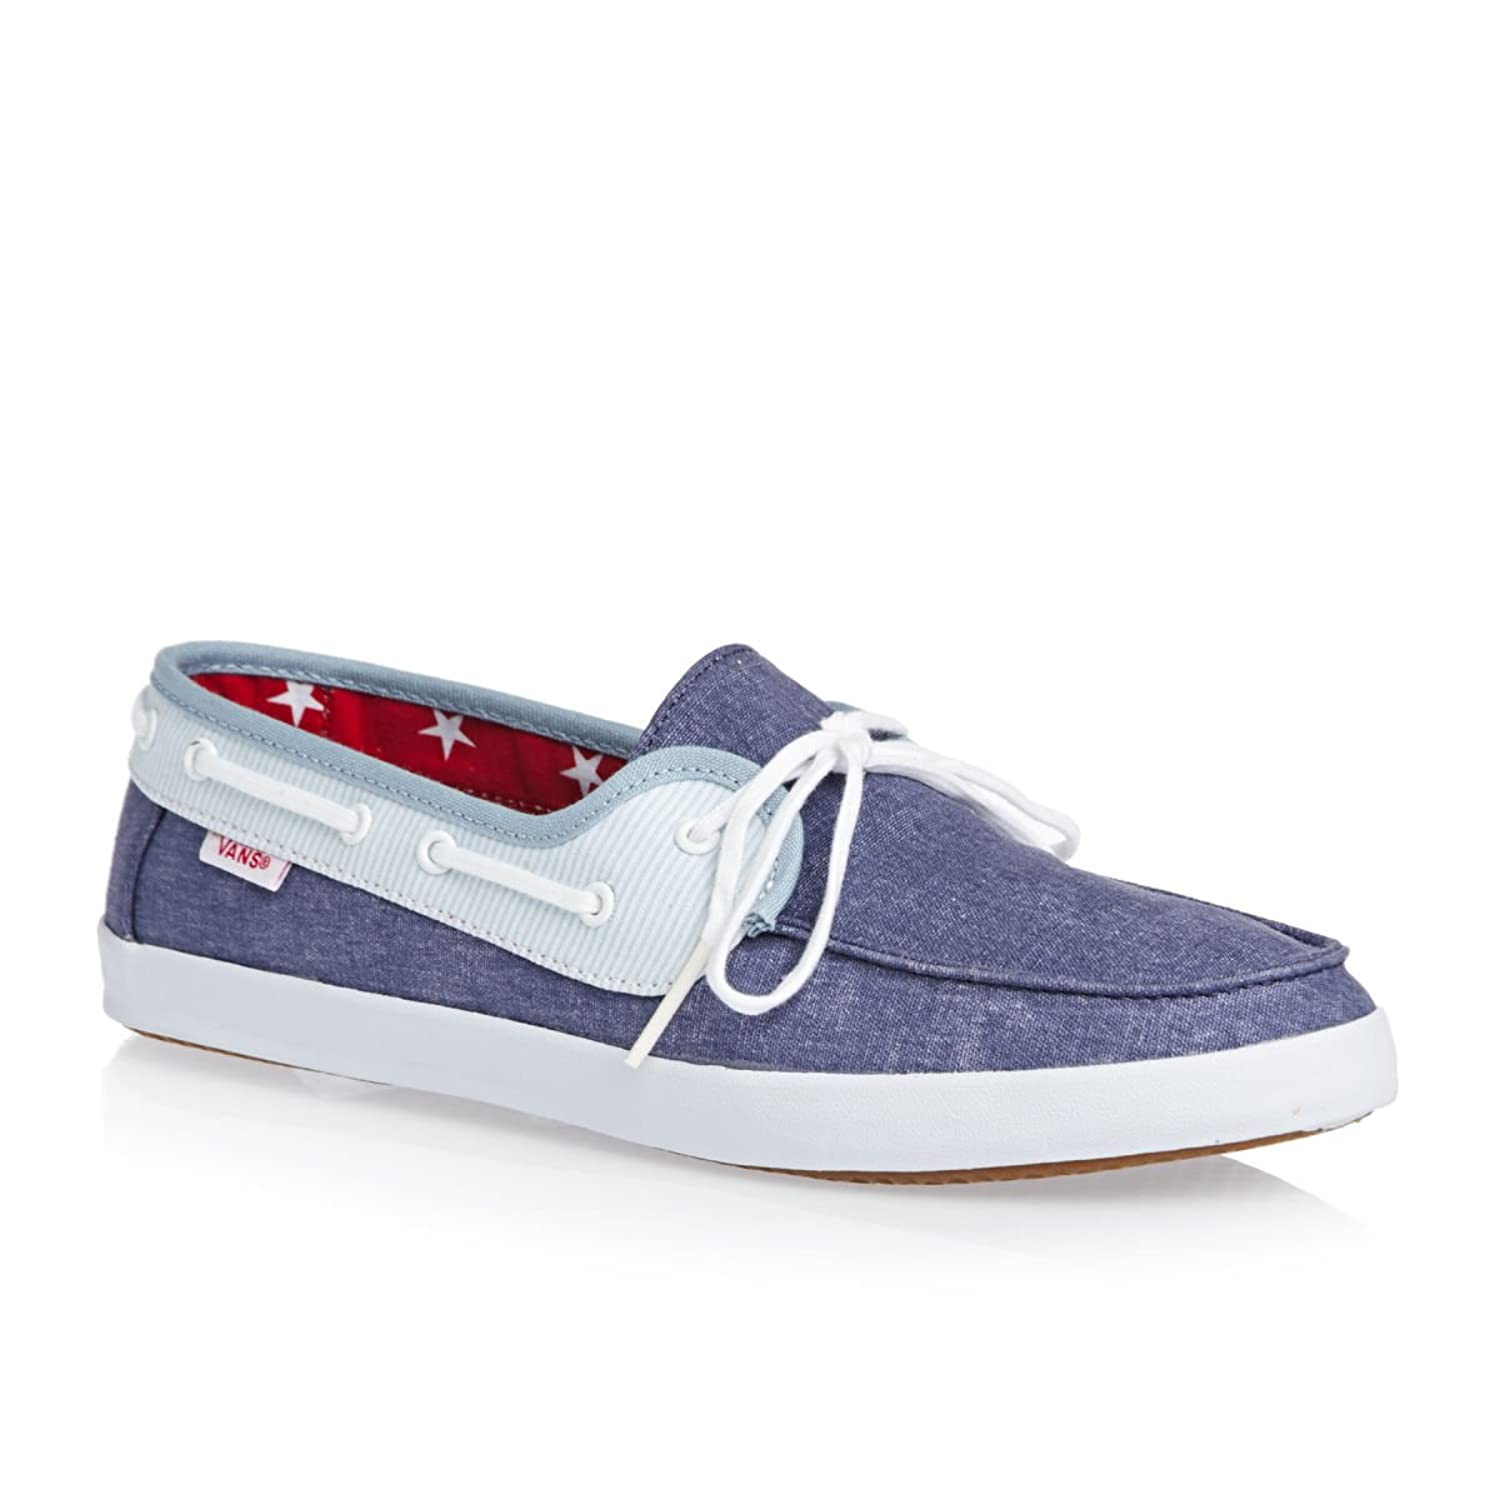 Vans Chauffette Womens Slip On Shoes UK 5 Americana STV Navy Forget Me Not